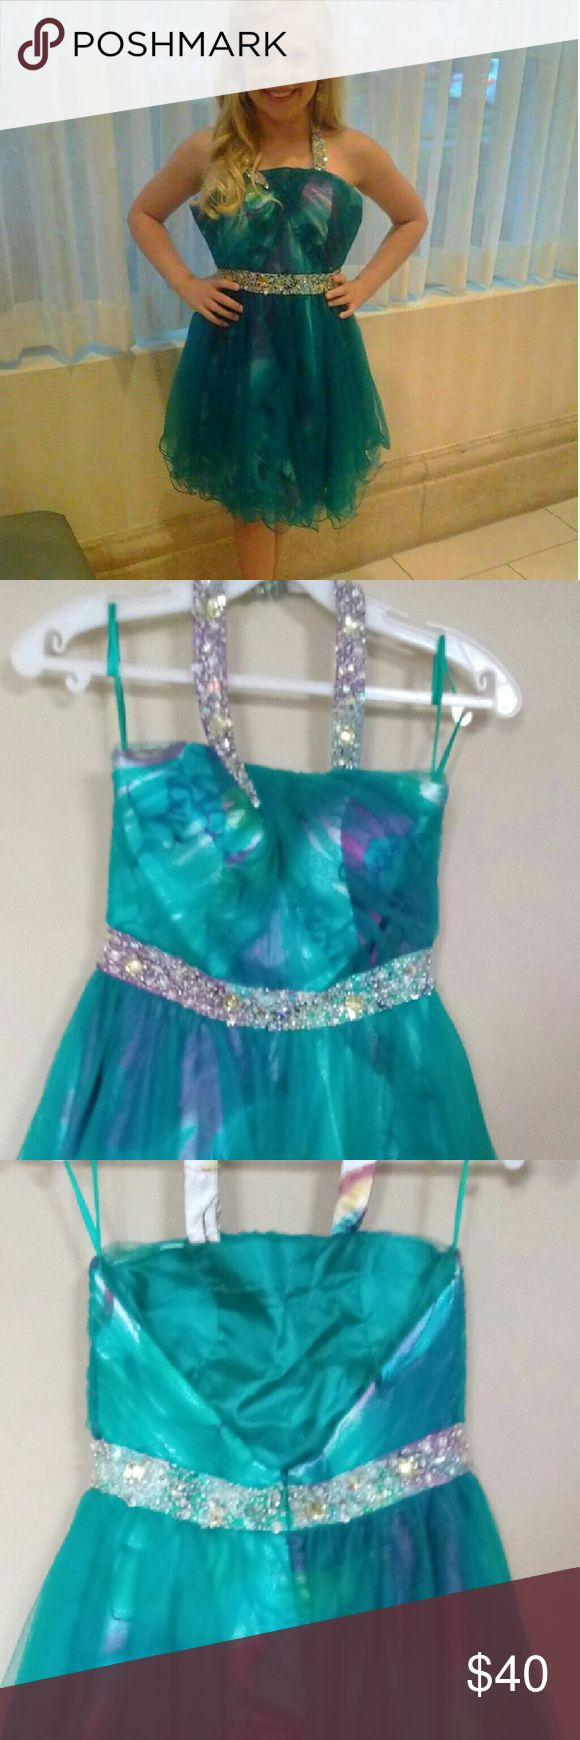 Teal homecoming dress Adorable cocktail dress. Teal with silver rhinestone accents.  Size xs .  fits size 0/2 Dresses Mini